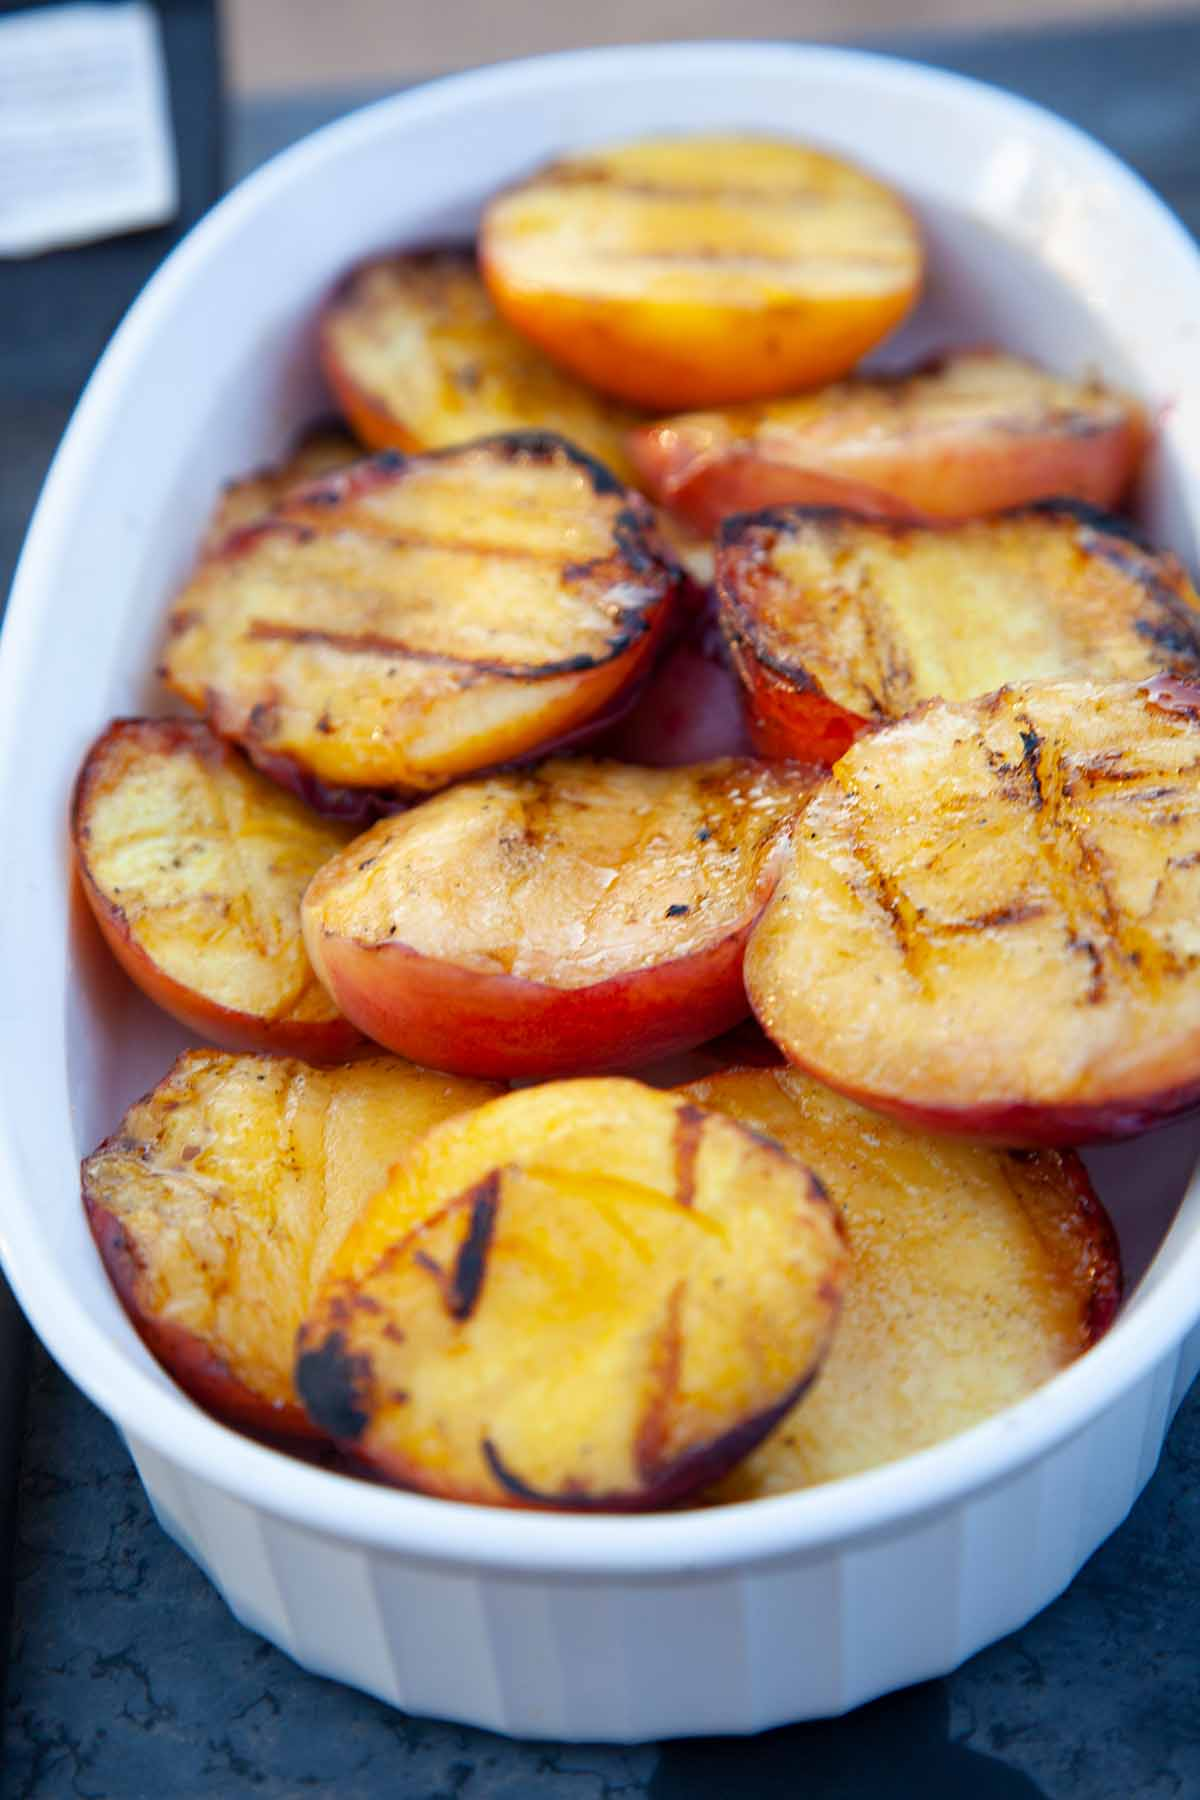 Finished grilled peaches